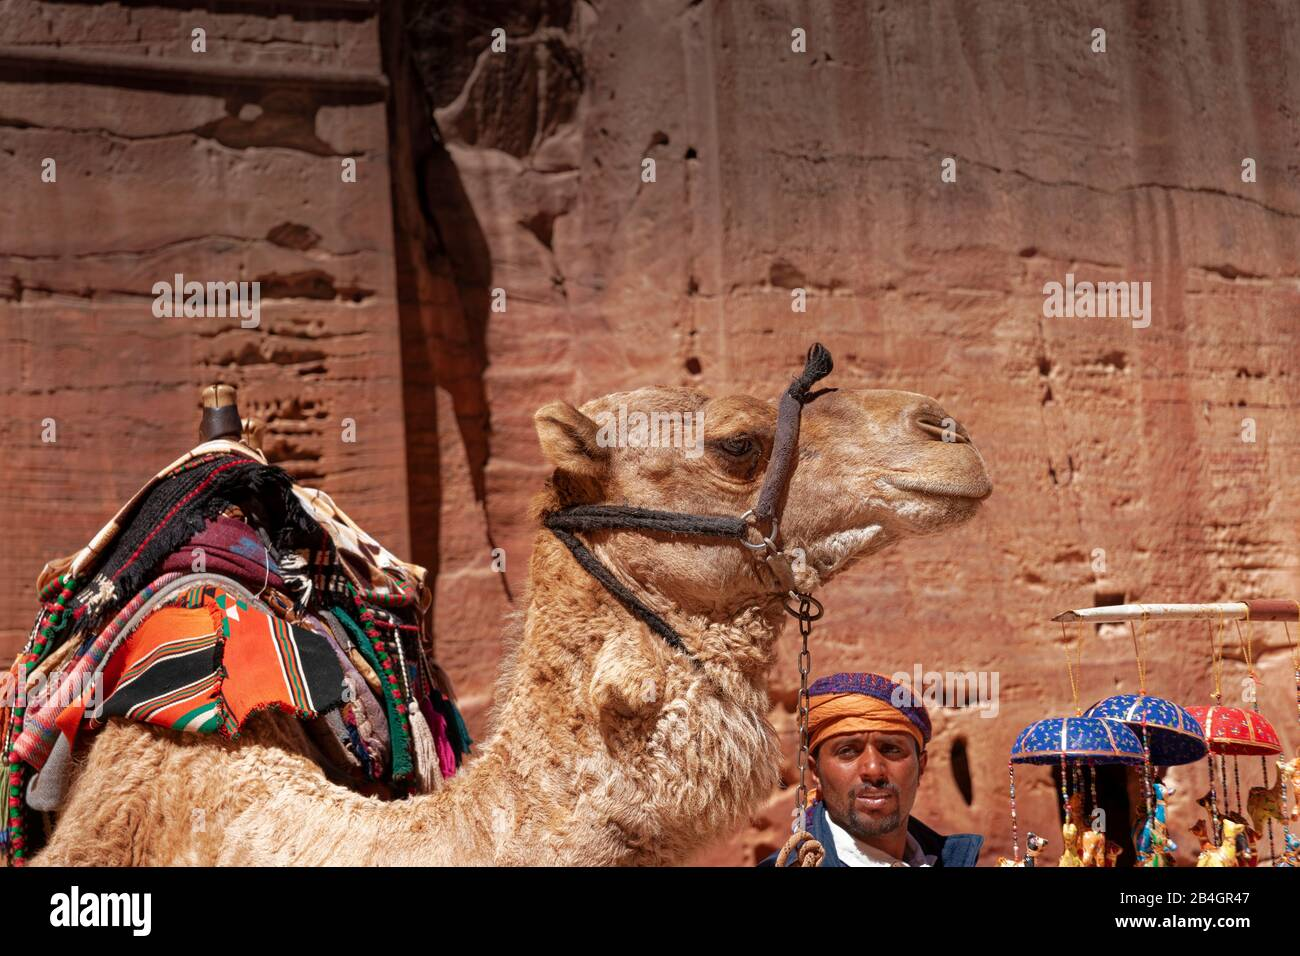 Jordan, Bedouin with camel in the rock city Petra Stock Photo